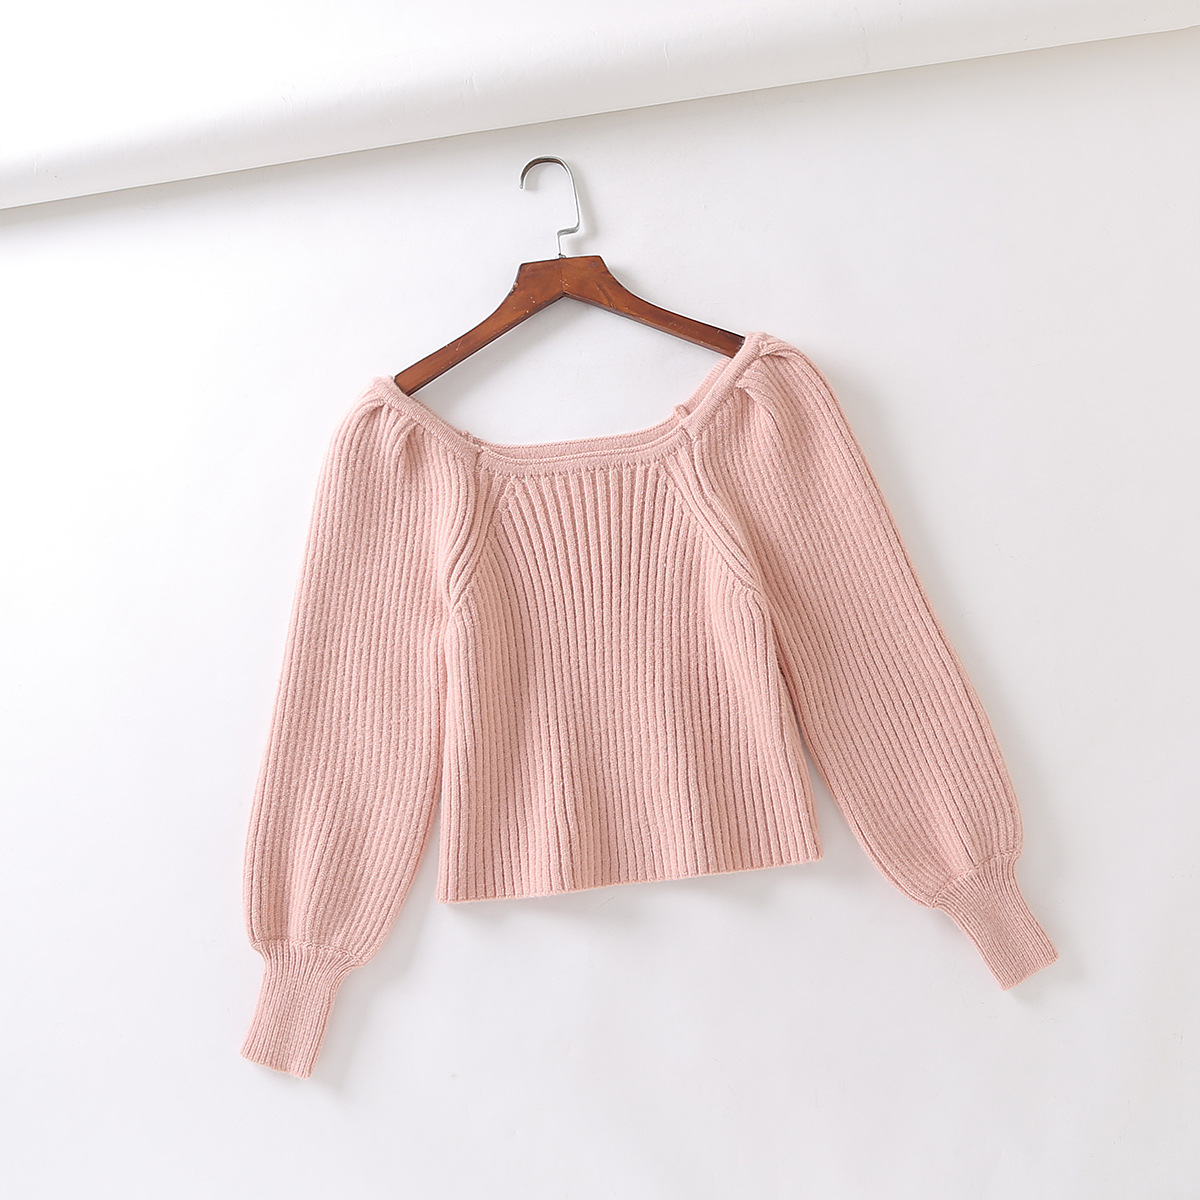 Wholesale Autumn French Square Neck Bubble Lantern Sleeve Short Women Knitted Top Sweater  NSAM3100